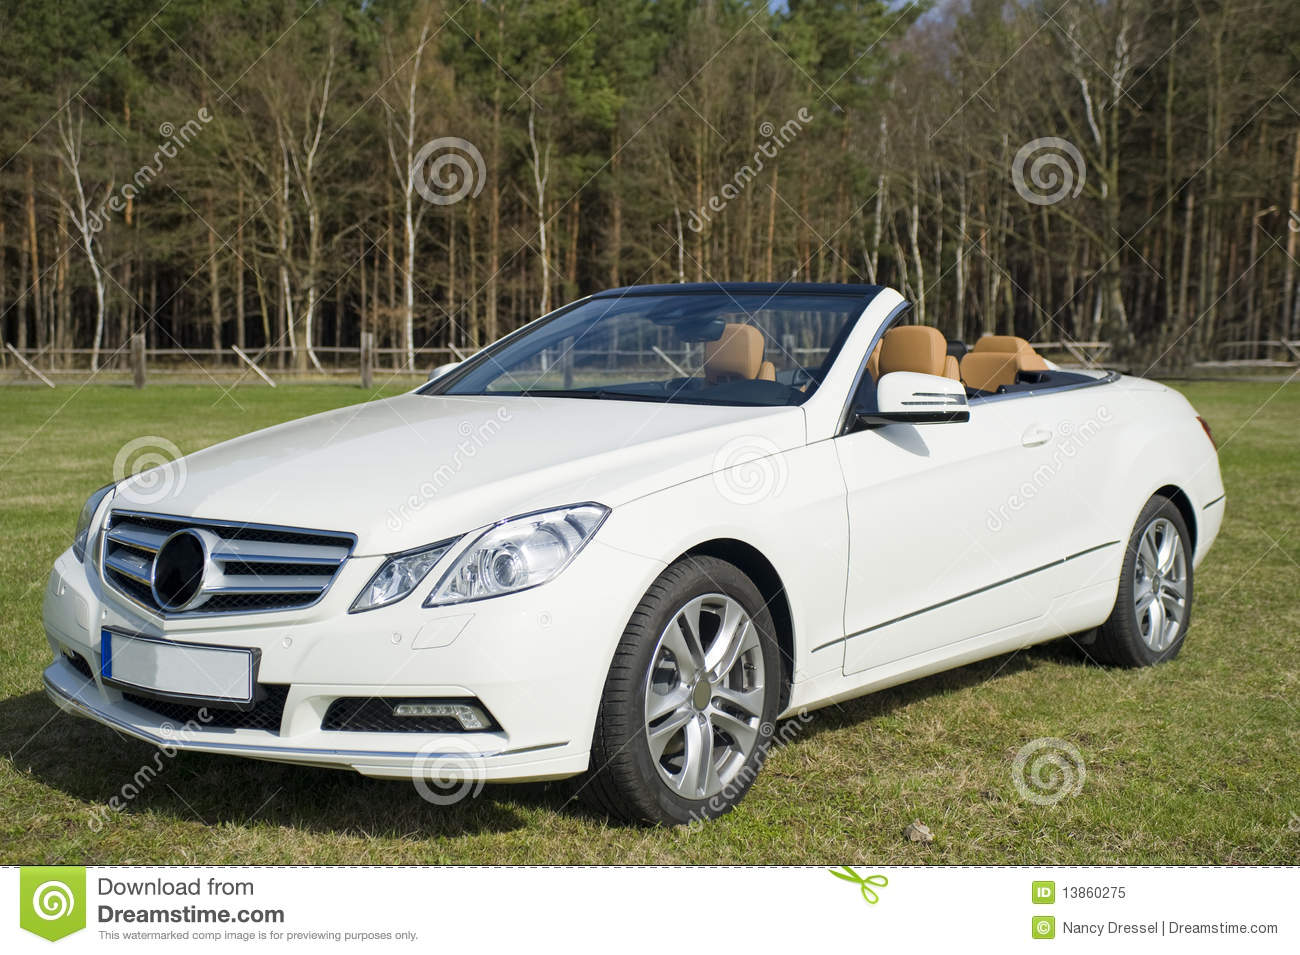 Expensive Car For Sale Or Gift Royalty Free Stock Image: Mercedes Benz Cabriolet Royalty Free Stock Photo